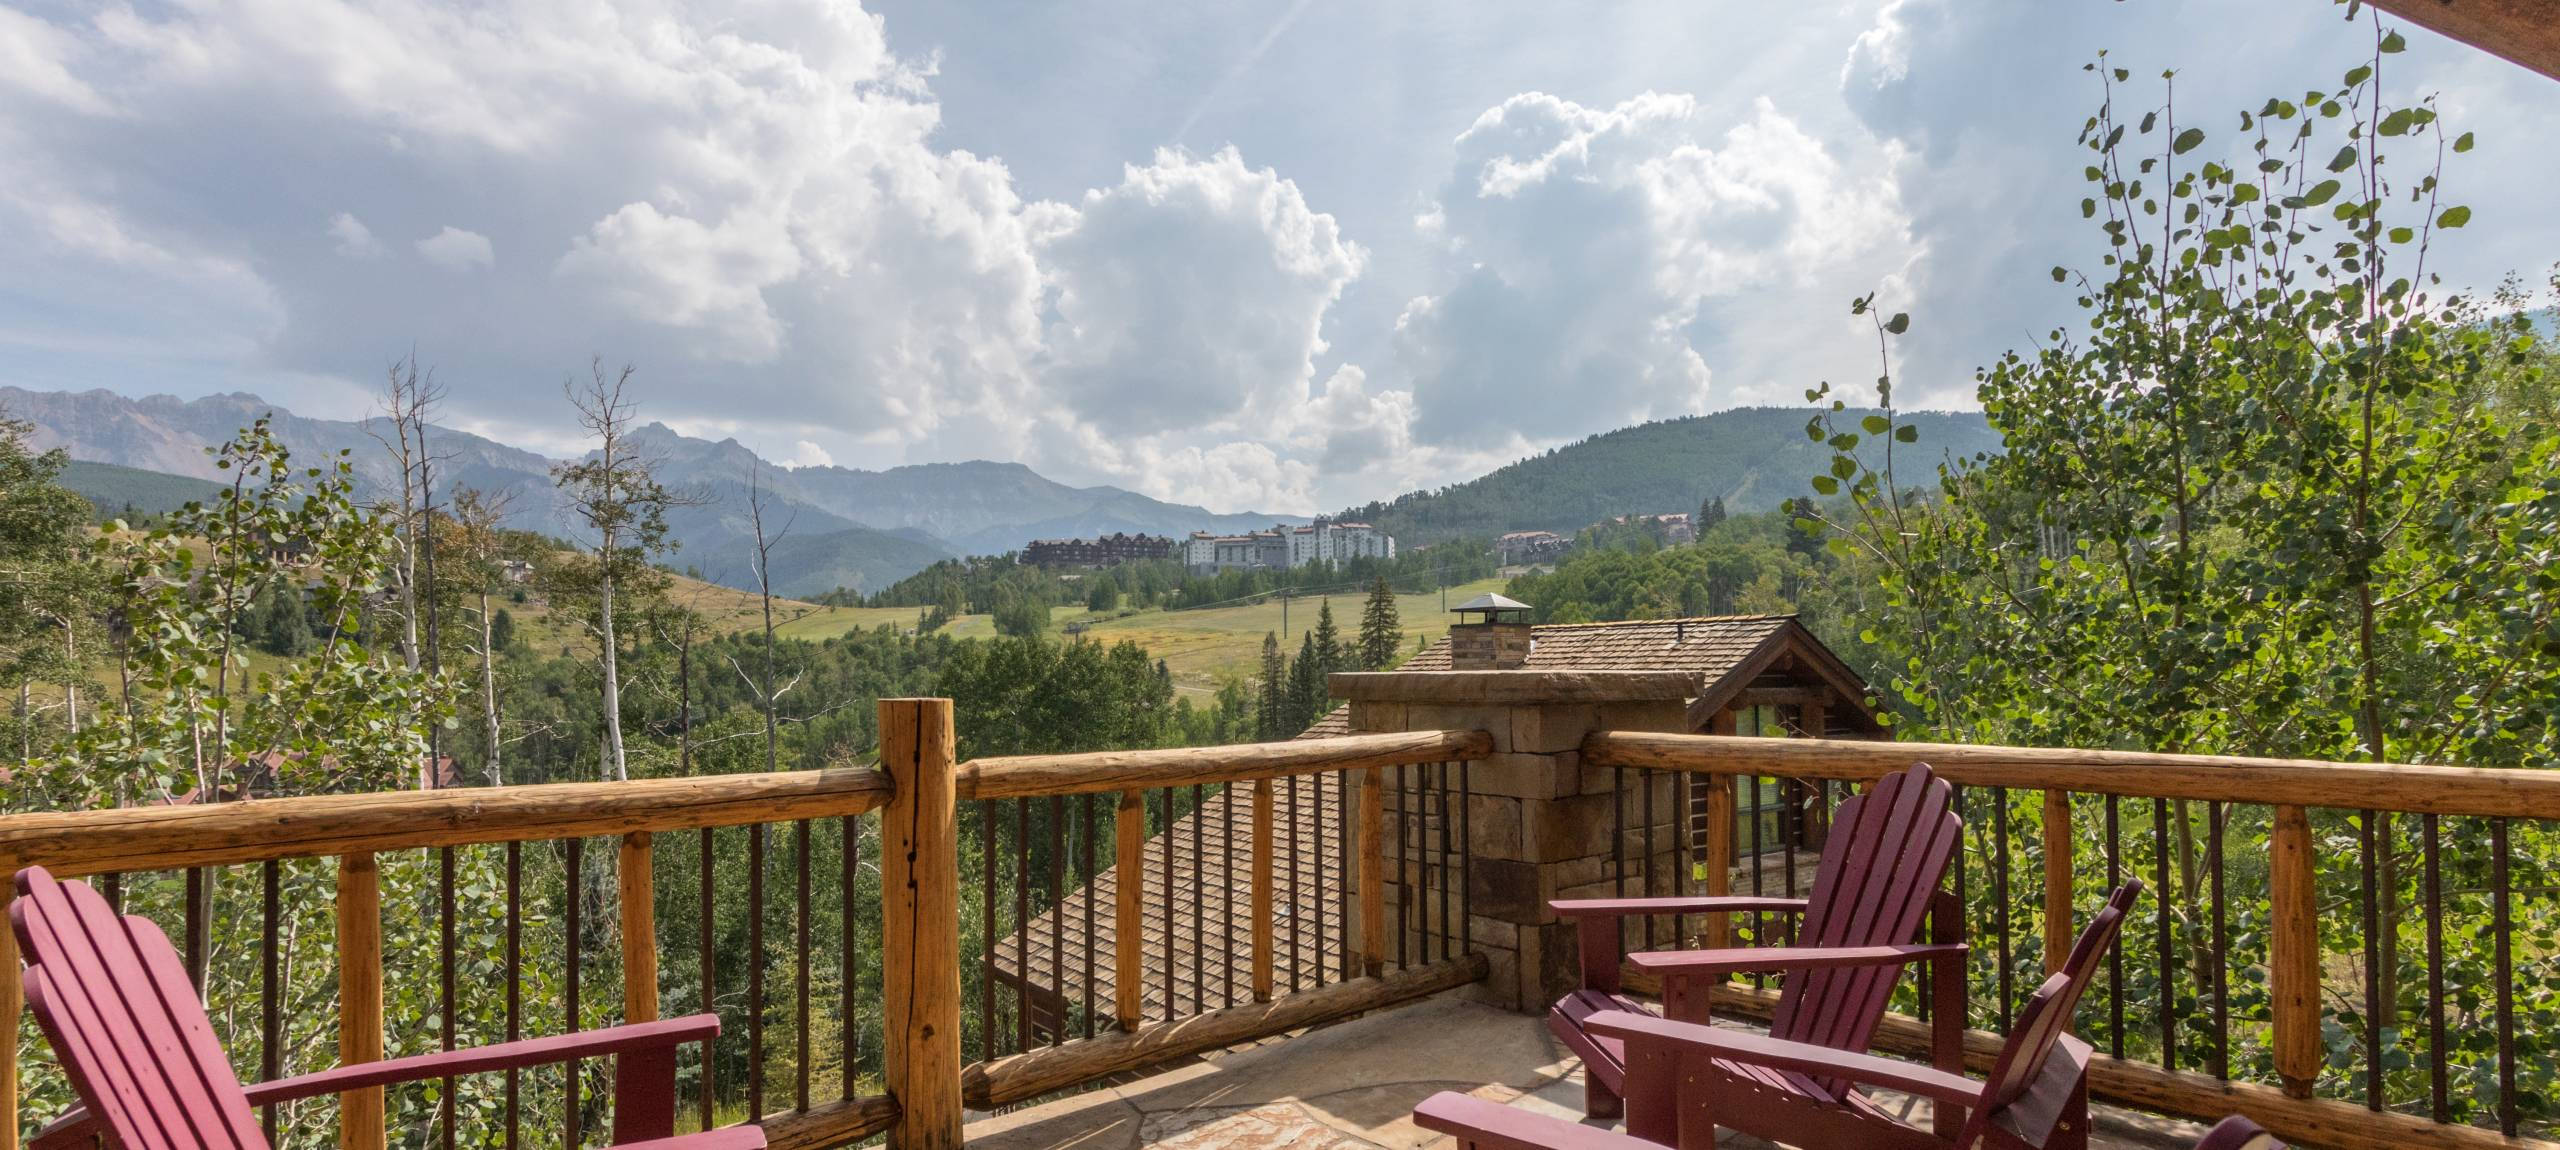 Telluride-Russell-Estate-Summer-Mountain-view-Balcony